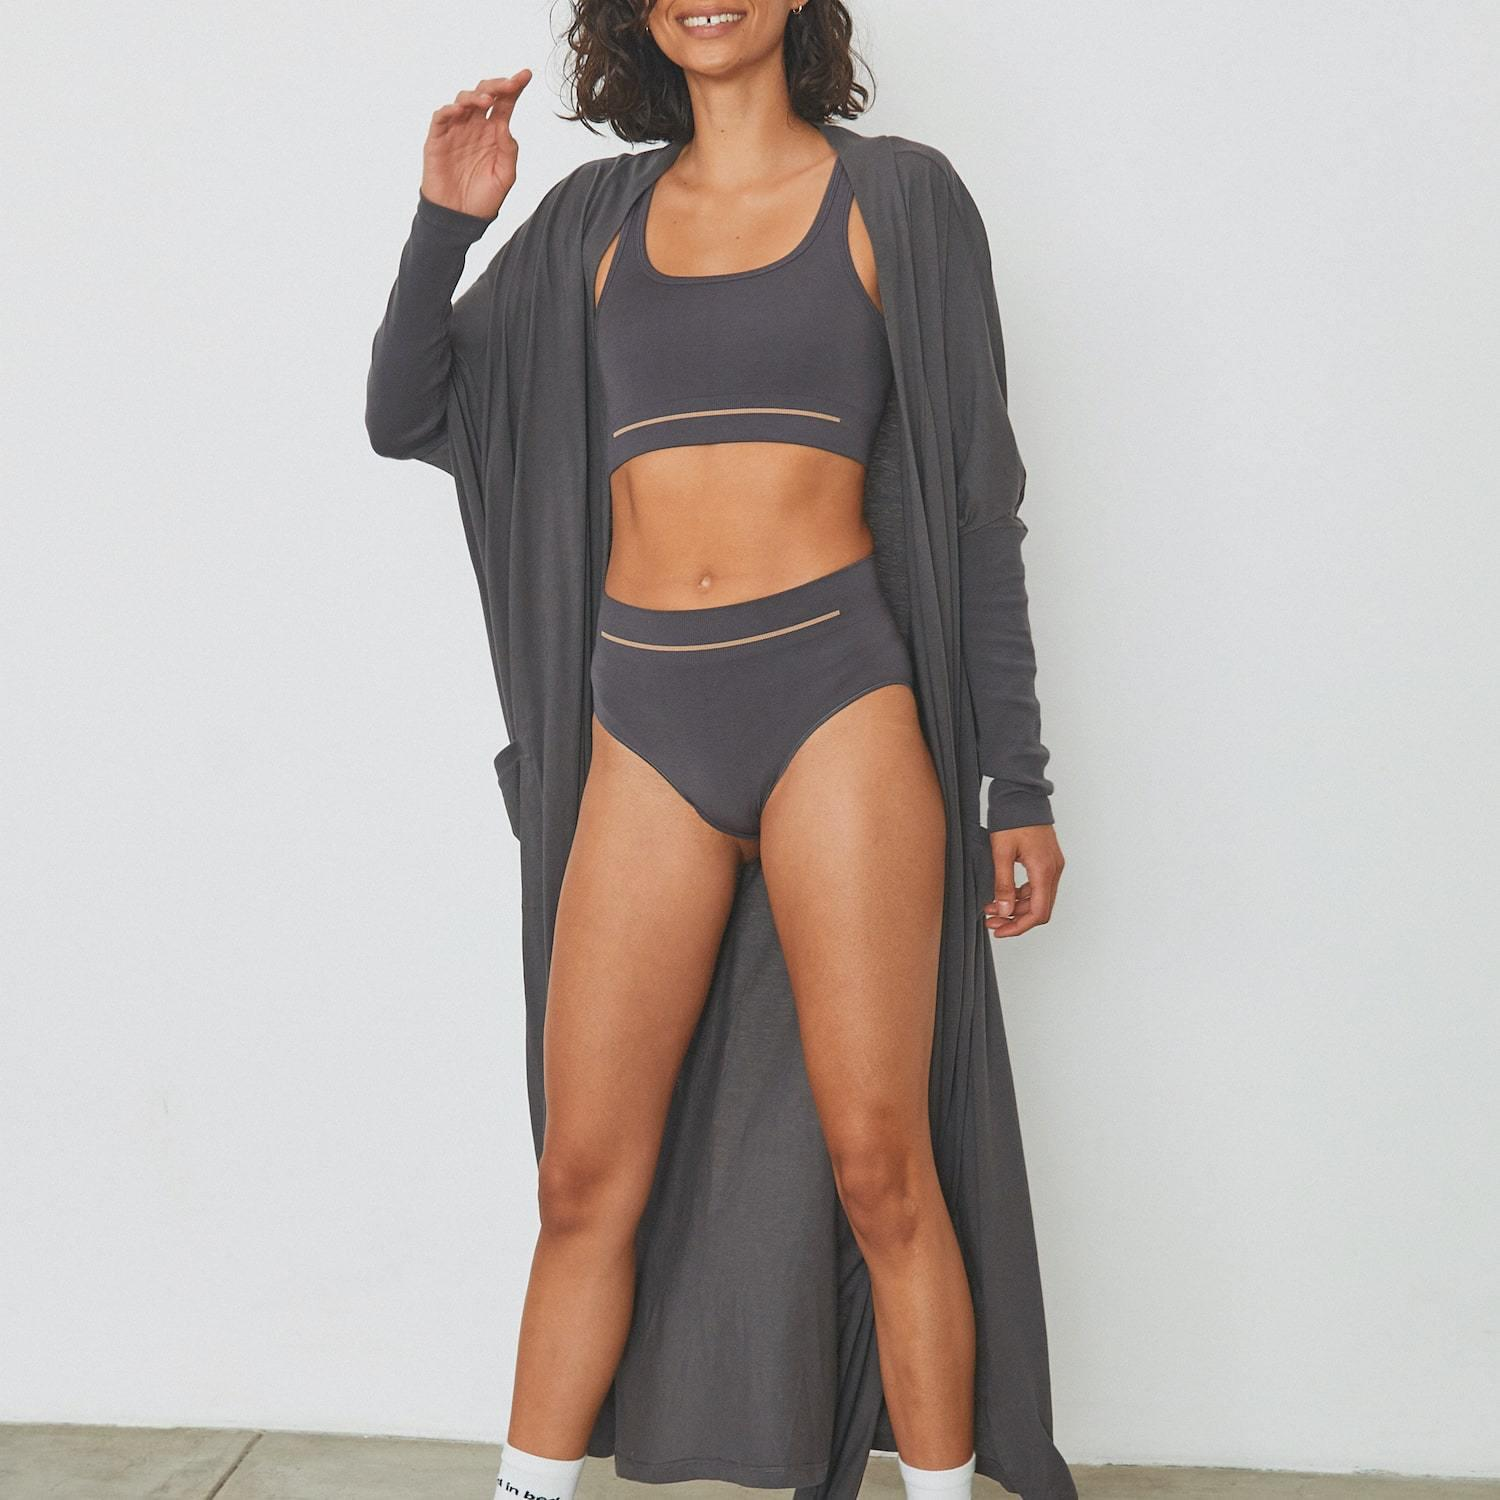 Soft Supportive Seamless Modal Brief 0